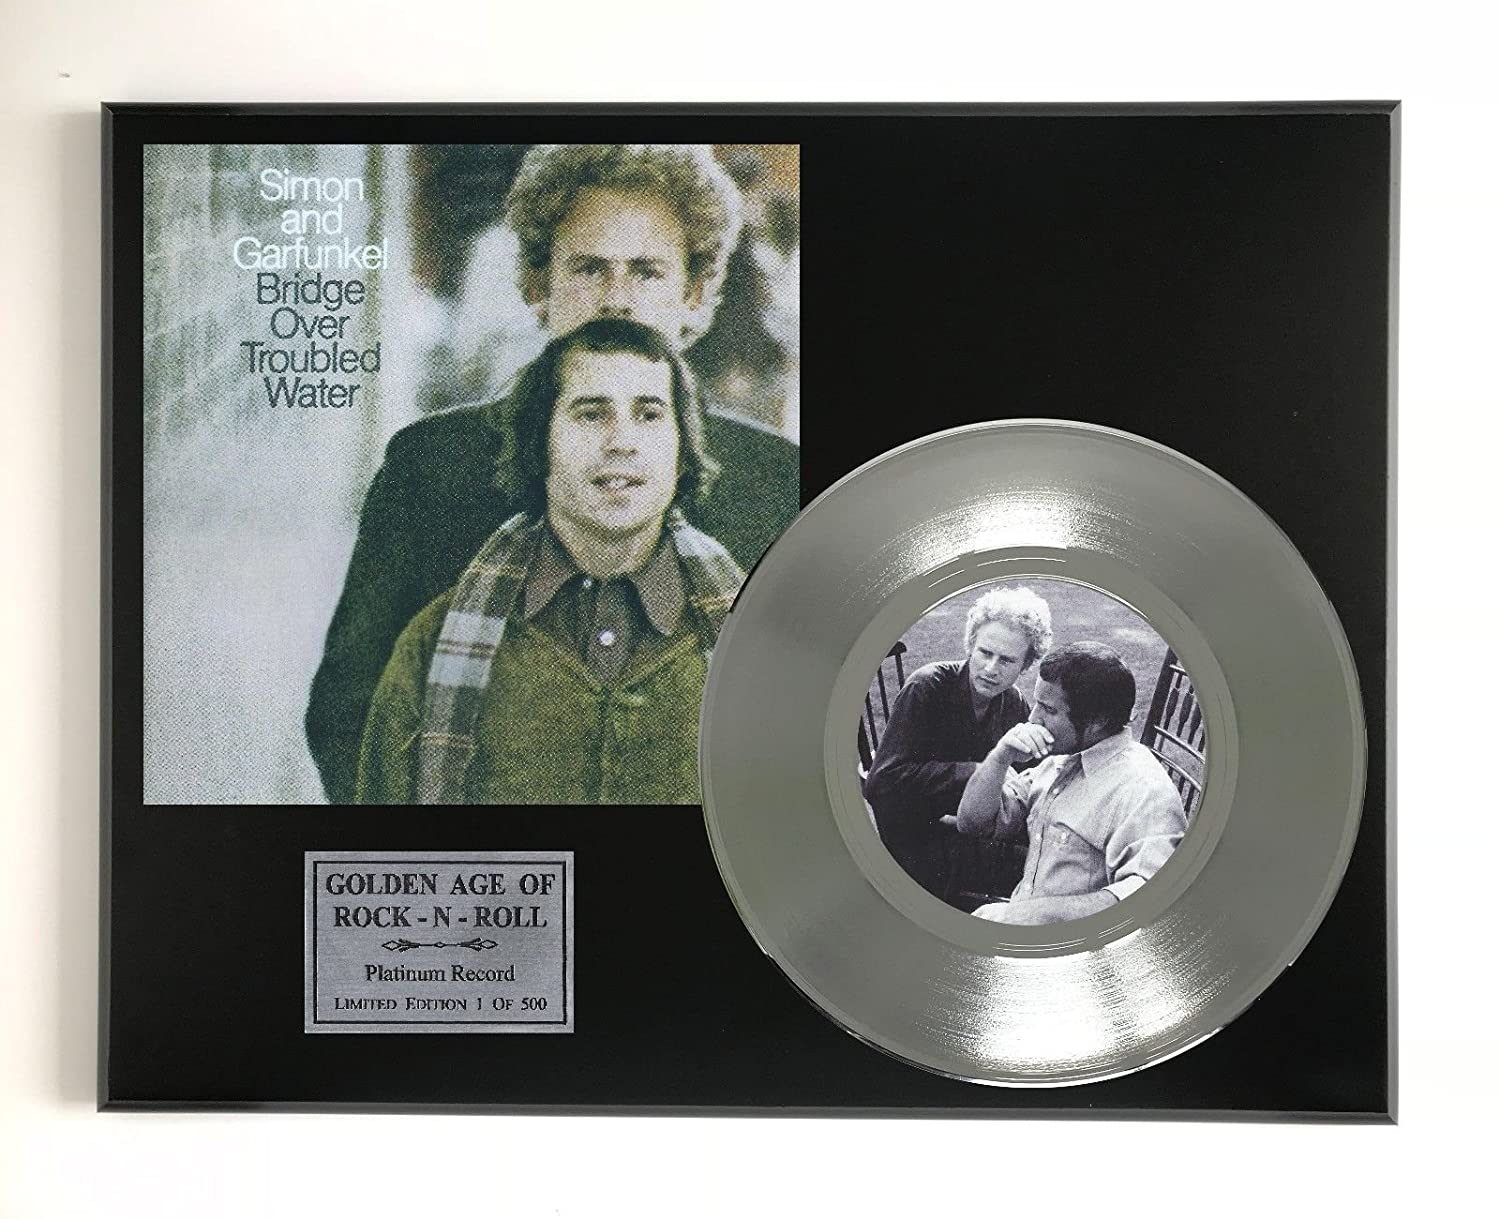 Simon And Garfunkel - Troubled Water Ltd Edition Platinum 45 Display M4